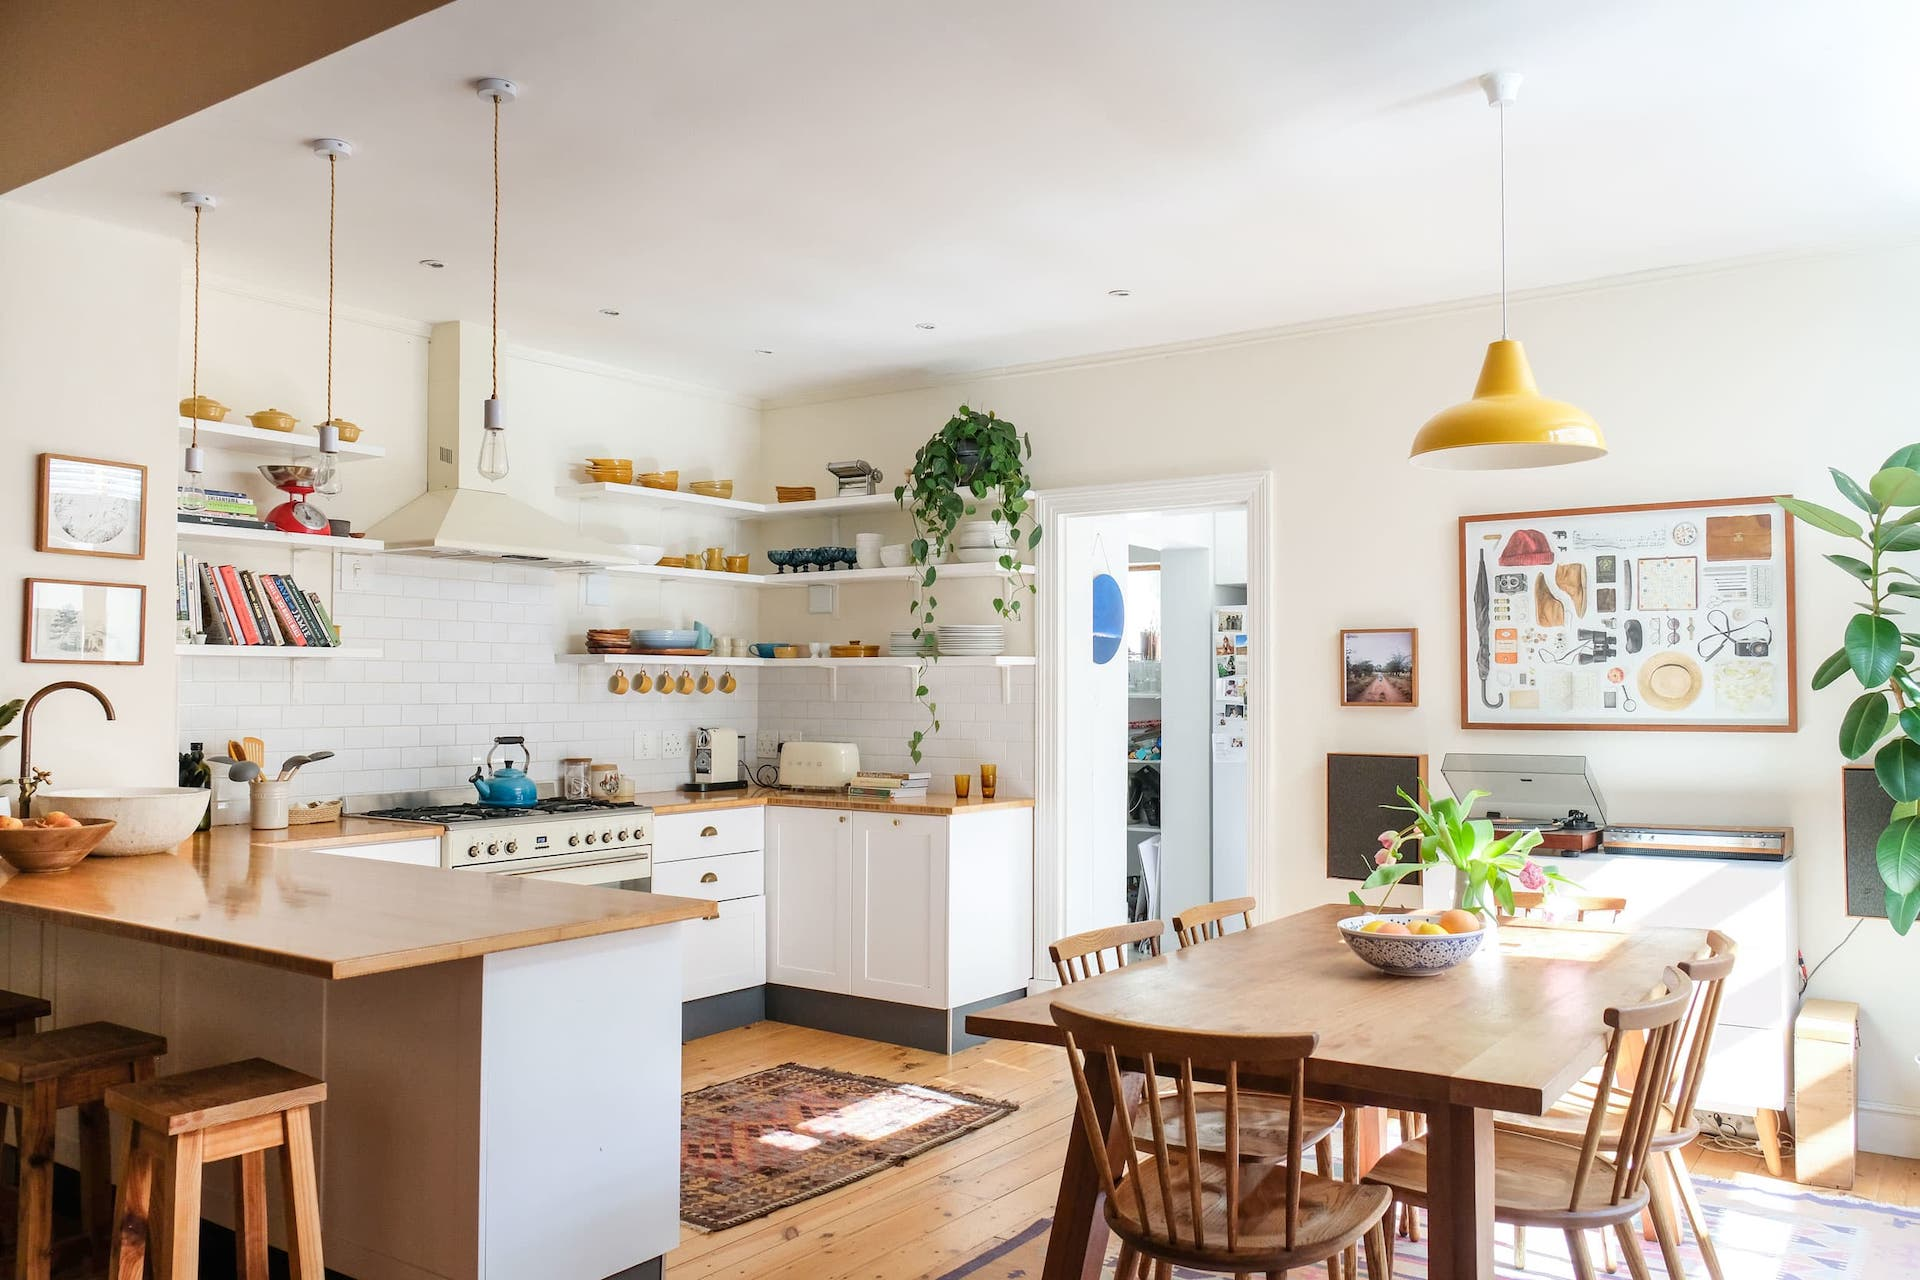 Scandinavian kitchen with warm wood cabinetry and pendant lights